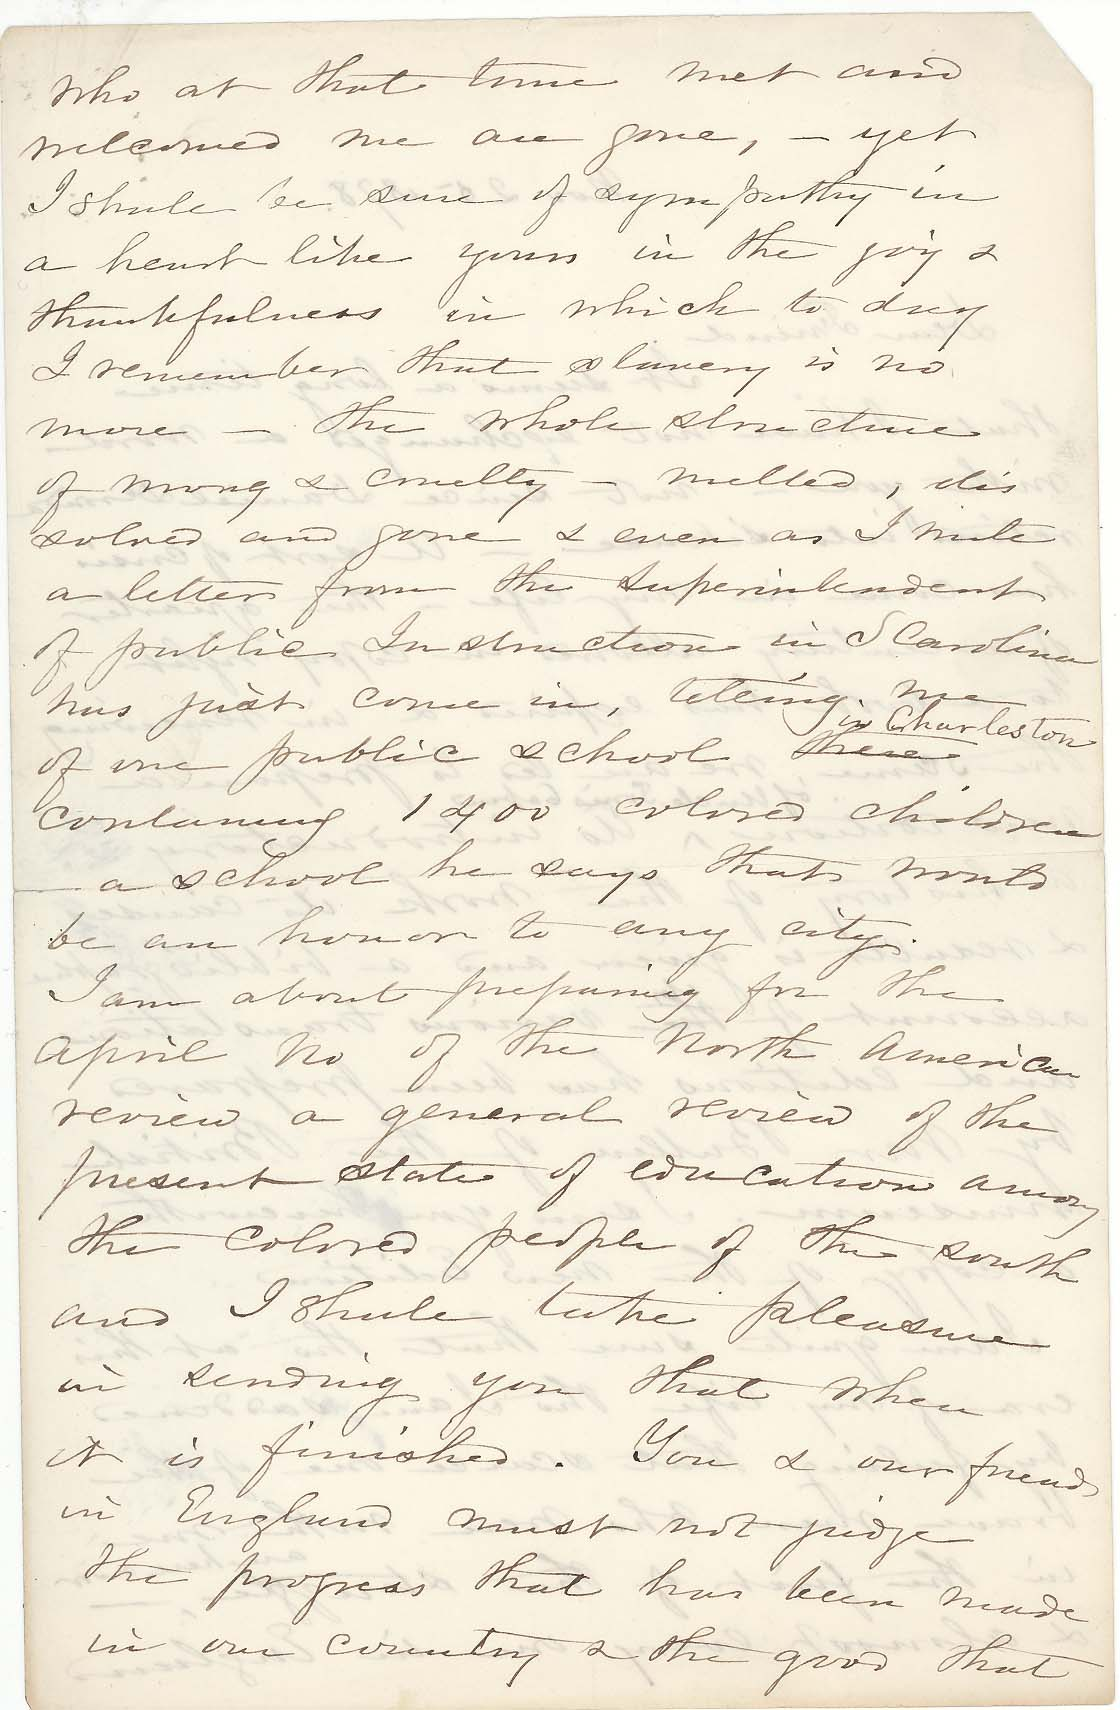 Harriet Beecher Stowe, Letter to George Eliot, 1878. Lowell Autographs, 302a, p.2